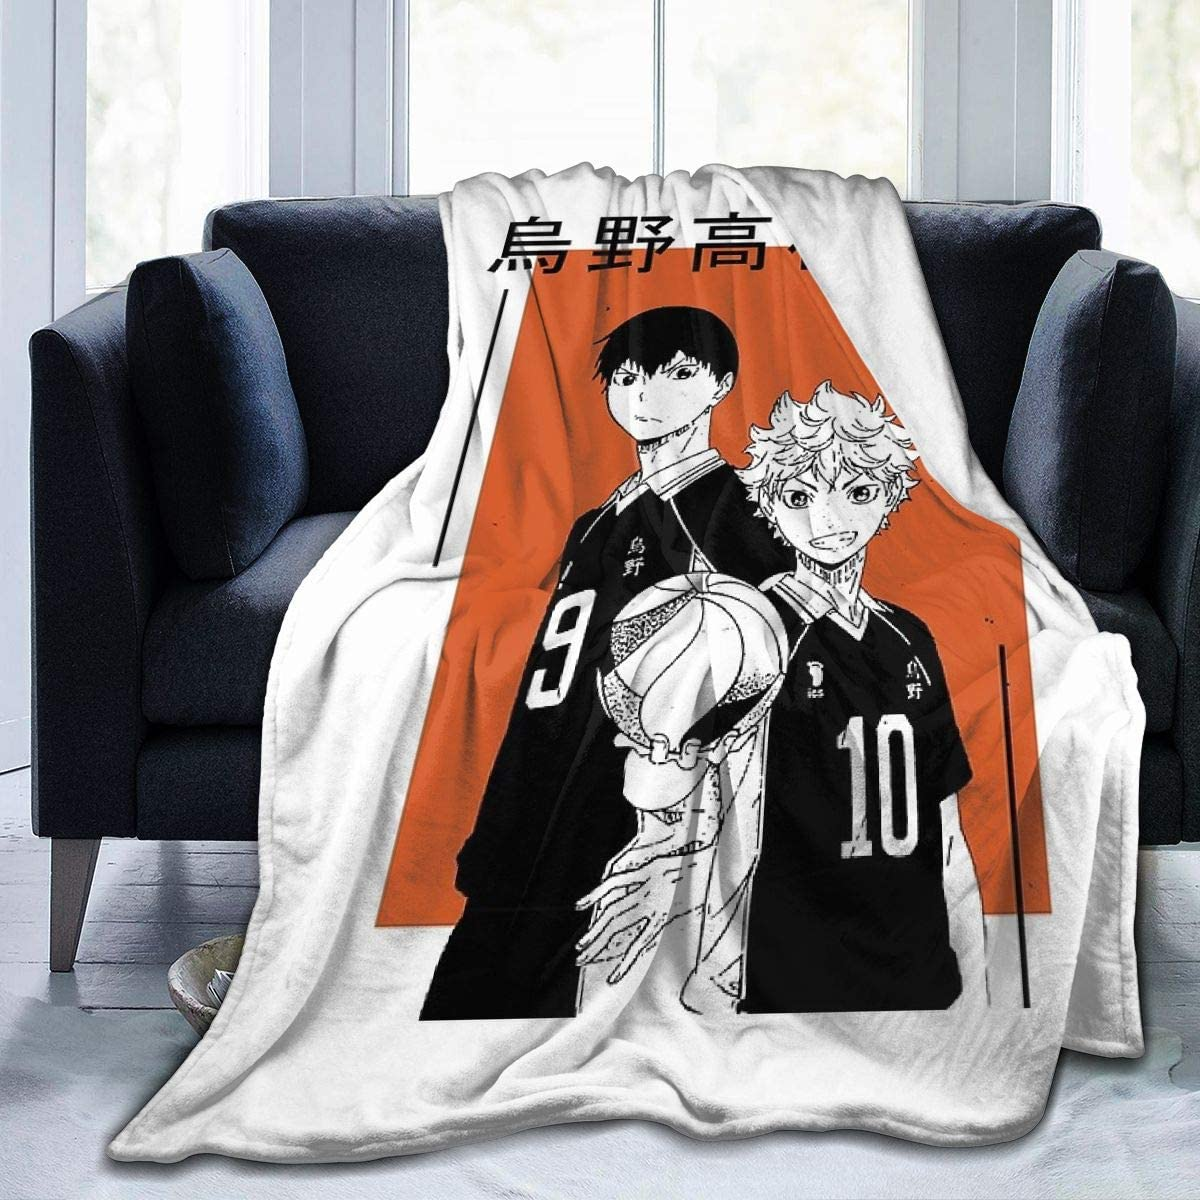 Amazon Com Annbition Haikyuu Hot Anime Manga Karasuno Kagehina Flannel Throw Blanket Ultra Soft Bedspread Microfiber Fleece Blanket Durable Home Decor Perfect For Couch Sofa Bed Small 50x40 In For Kids Home Kitchen